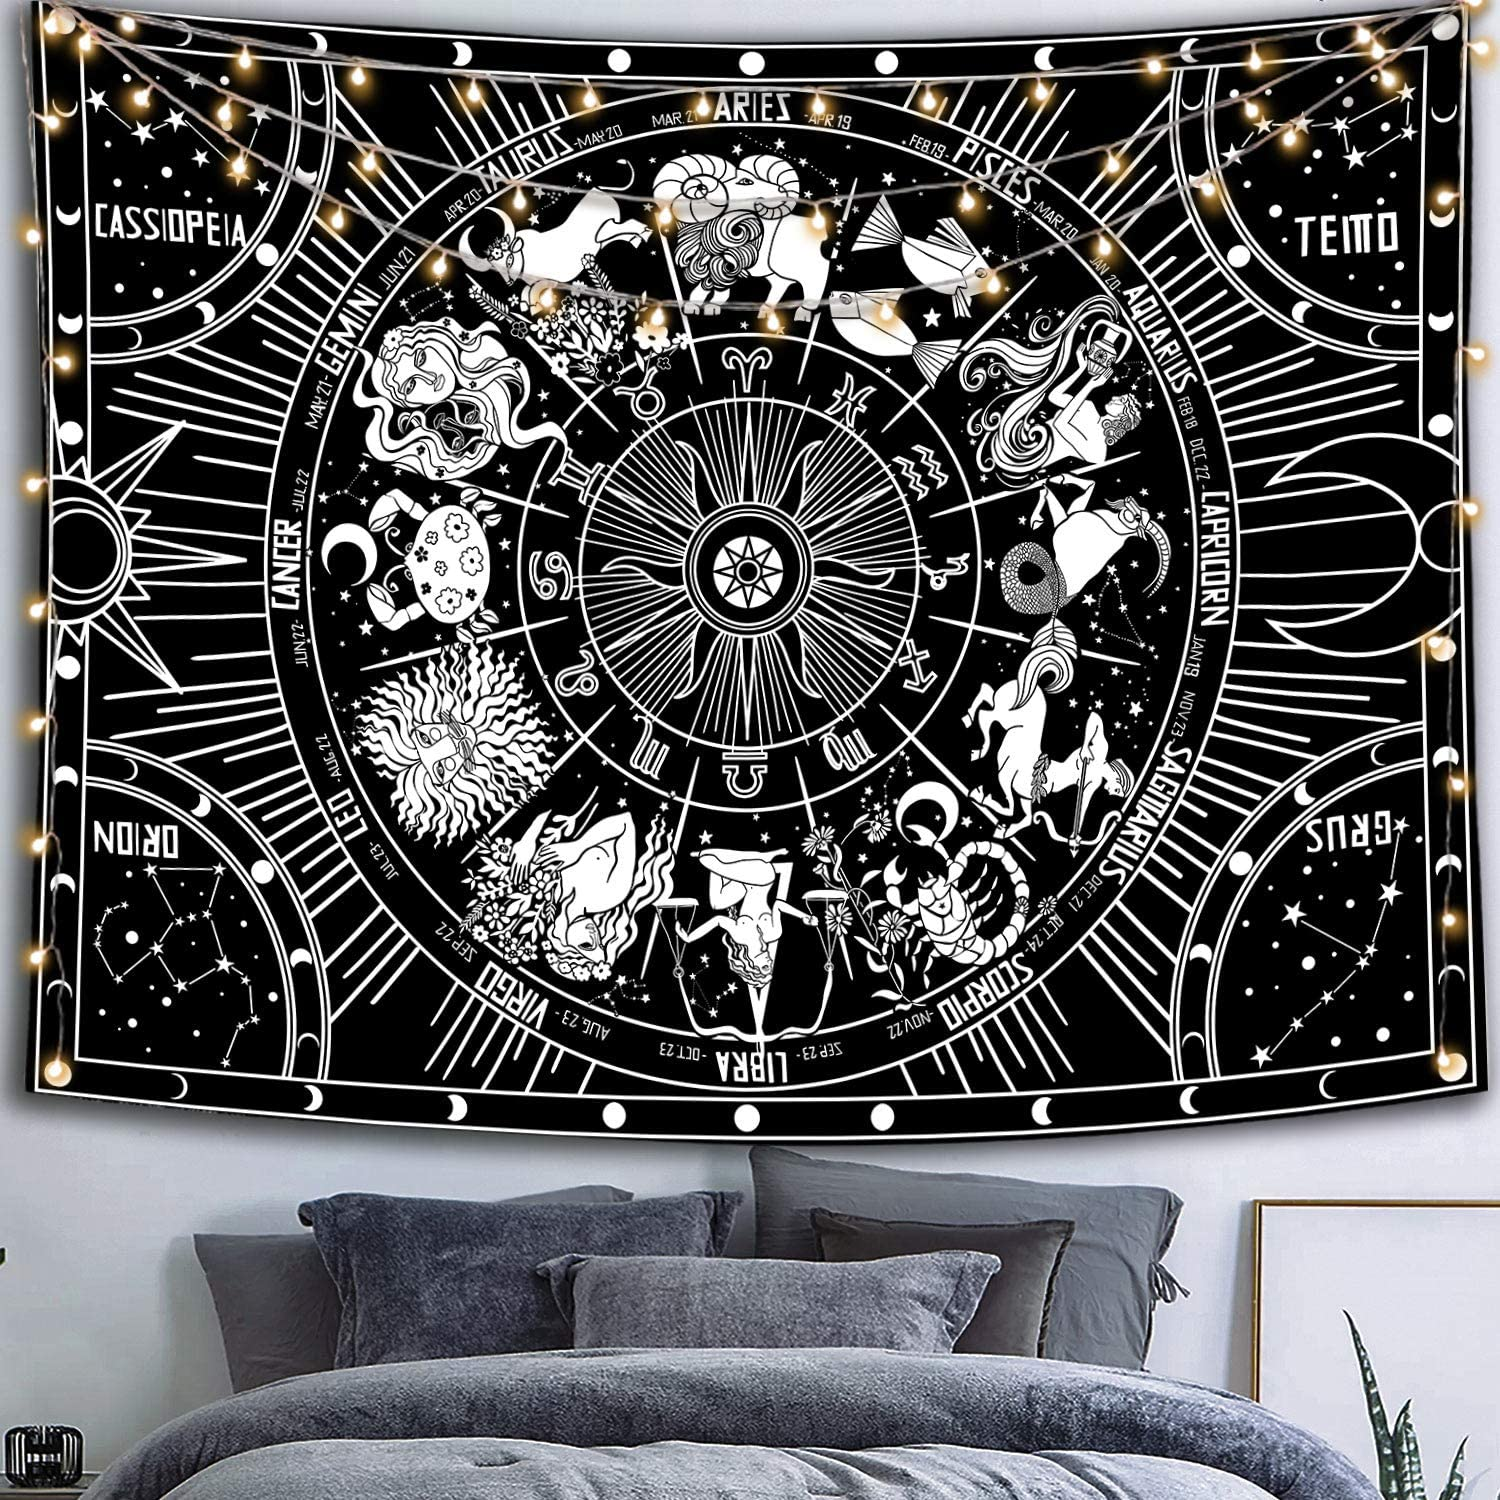 Black and White Tapestry, Constellation Tapestry Wall Hanging, Moon Tapestries for bedroom 50''×60''